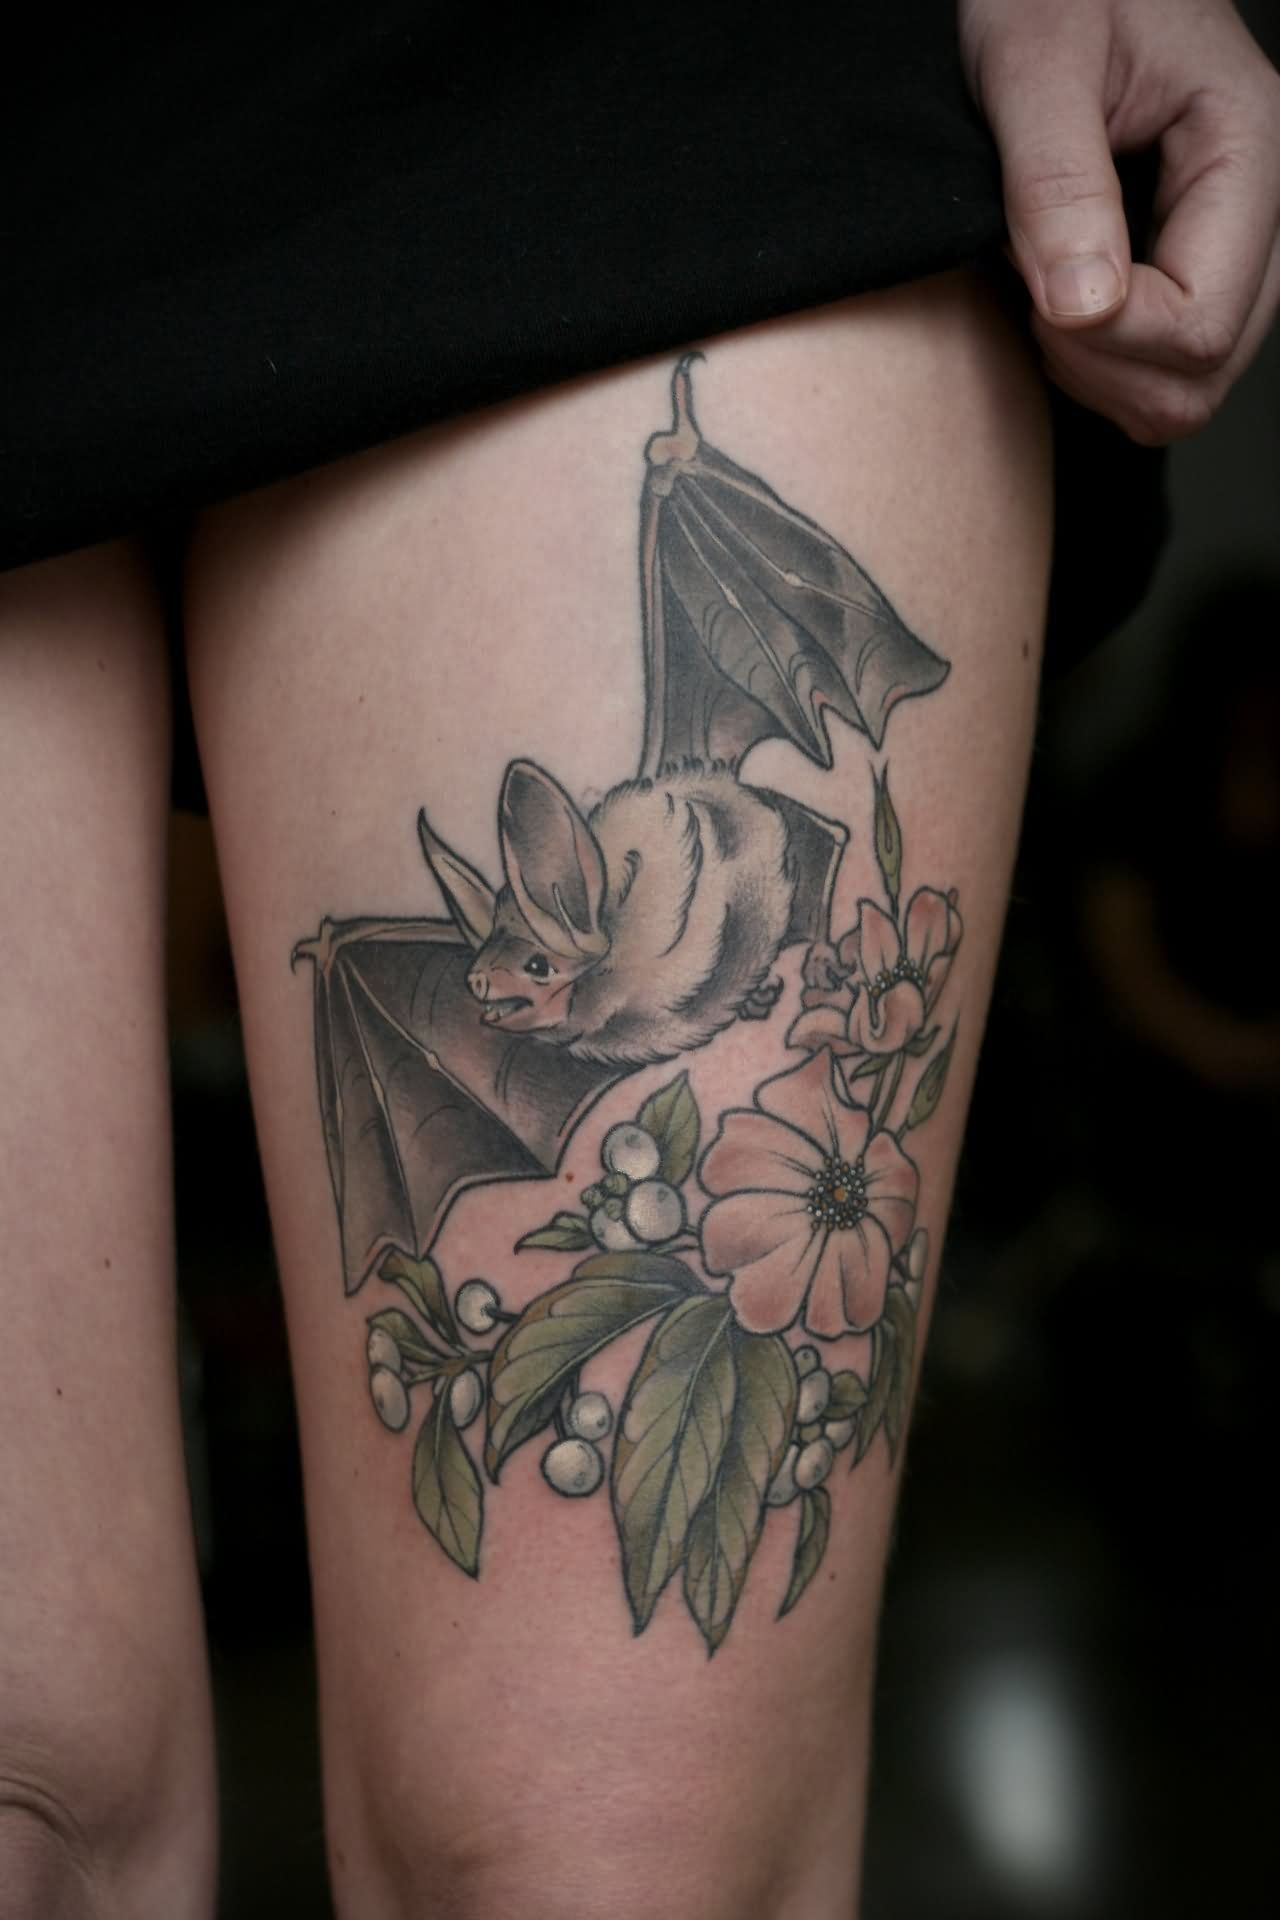 466d6c6bccd98 Floral With Bat Tattoo Design For Thigh | tattoo | Floral arm tattoo ...